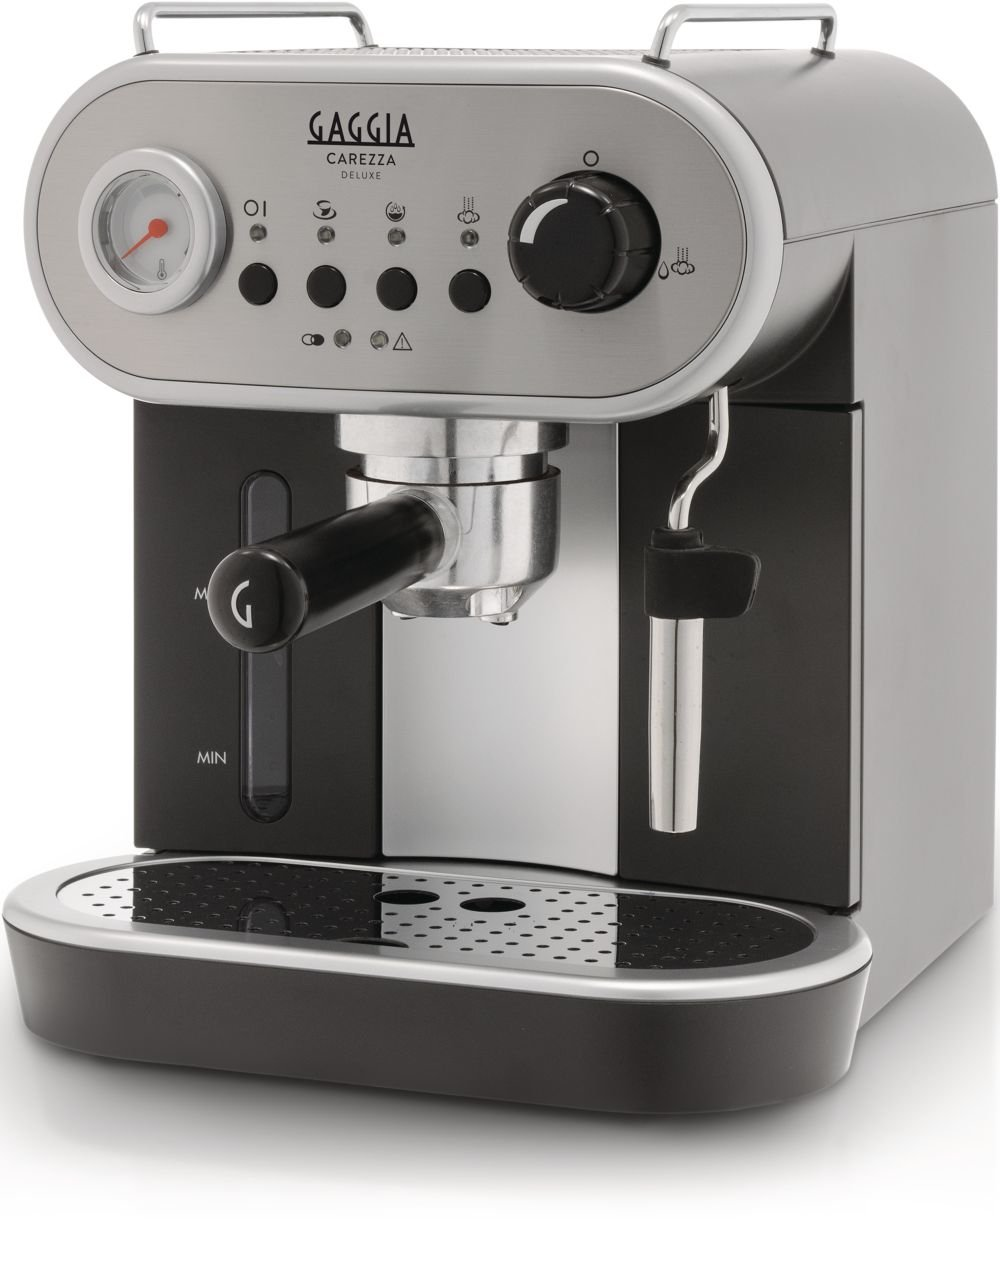 Gaggia Carezza Deluxe Espresso coffee Machine - RI8525/08 RI8525/01 10004204